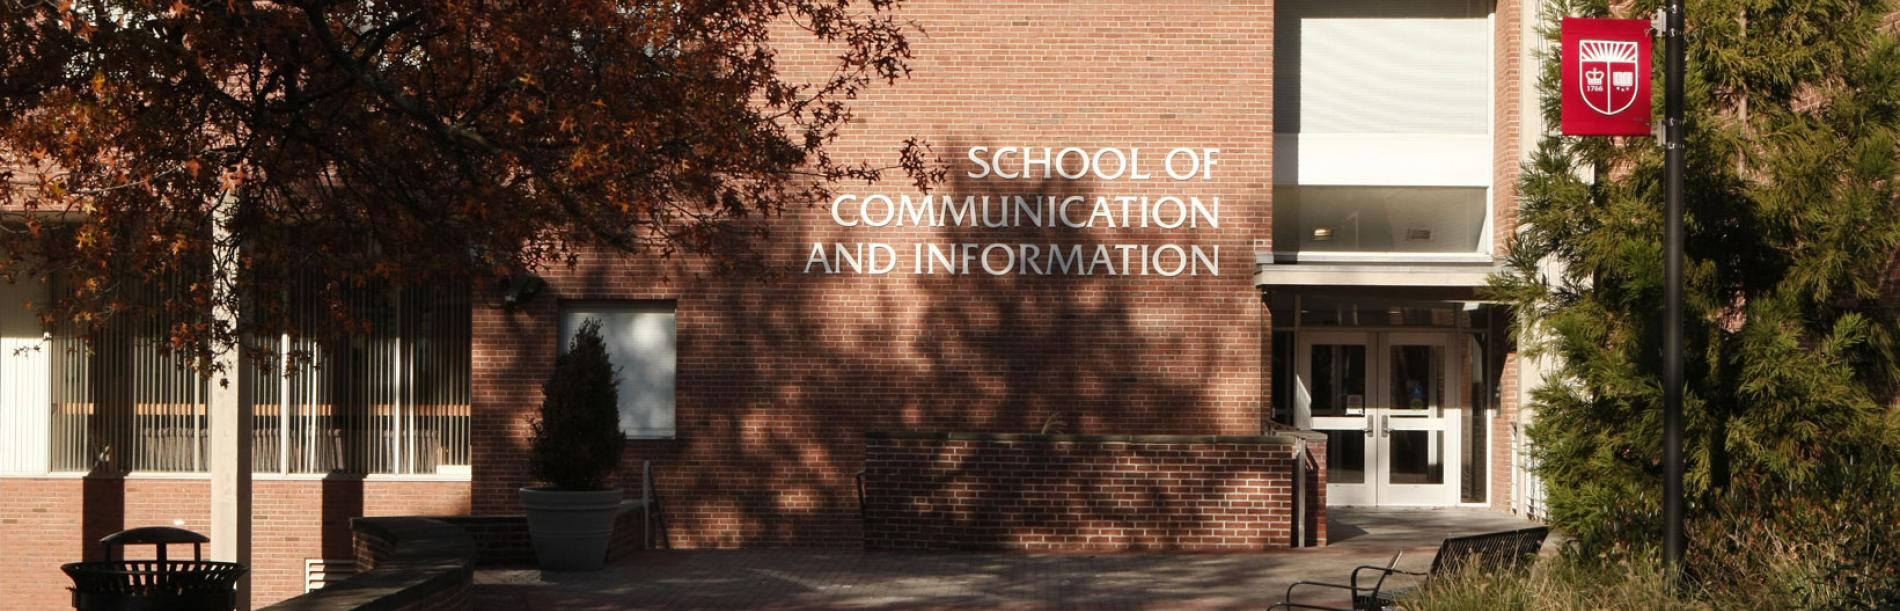 School of Communication and Information